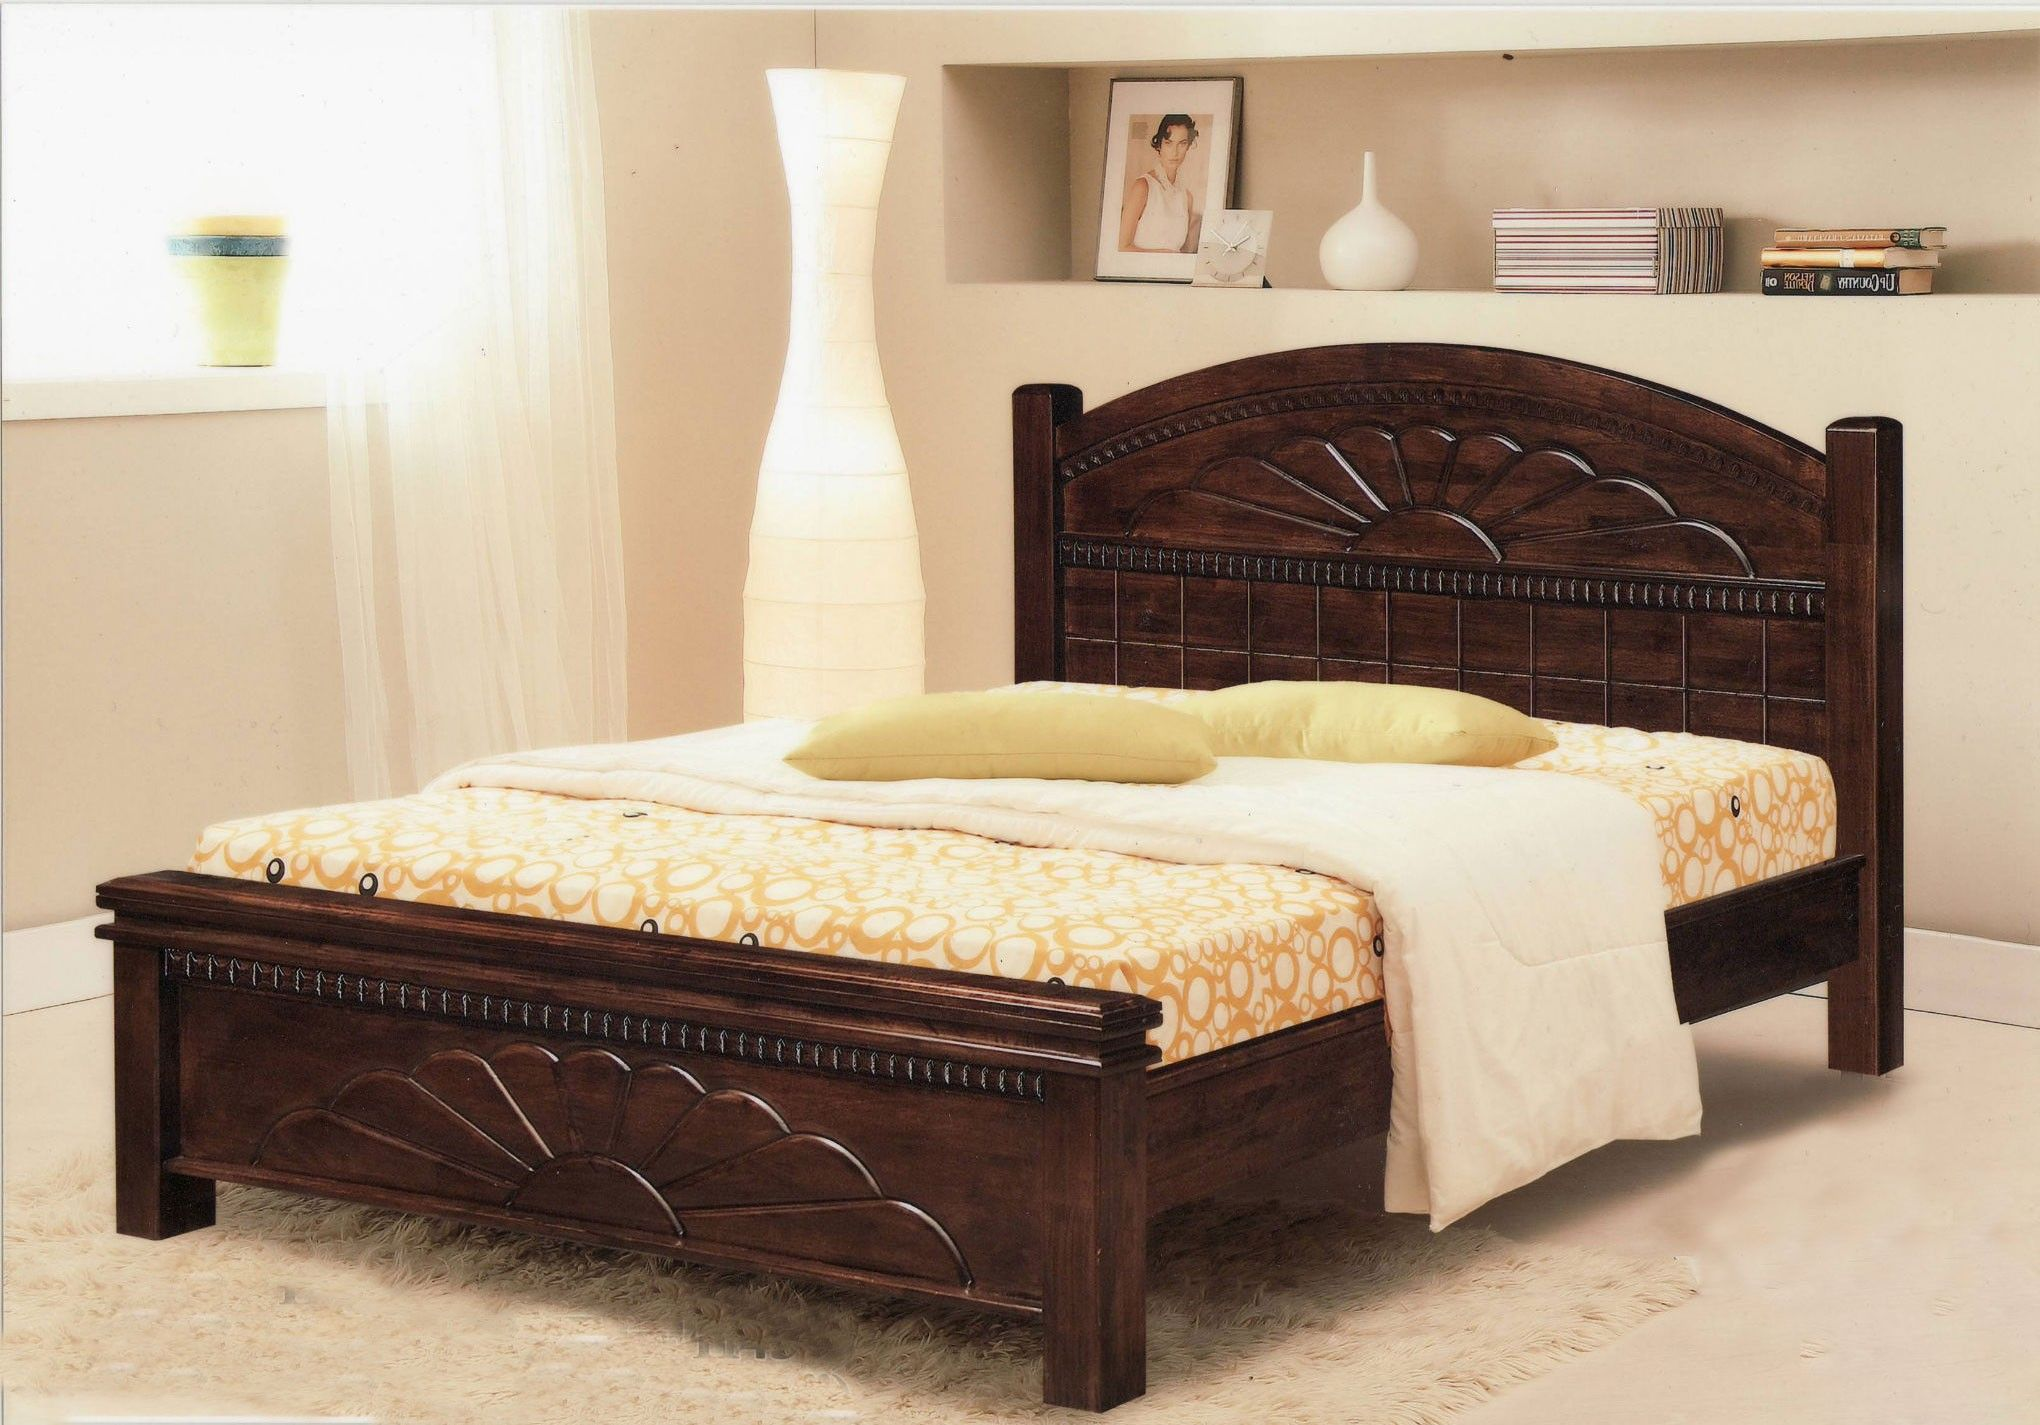 A queen wooden bed! My dream bed! I wish to get one really soon as I still  sleep in my little girl's bed.